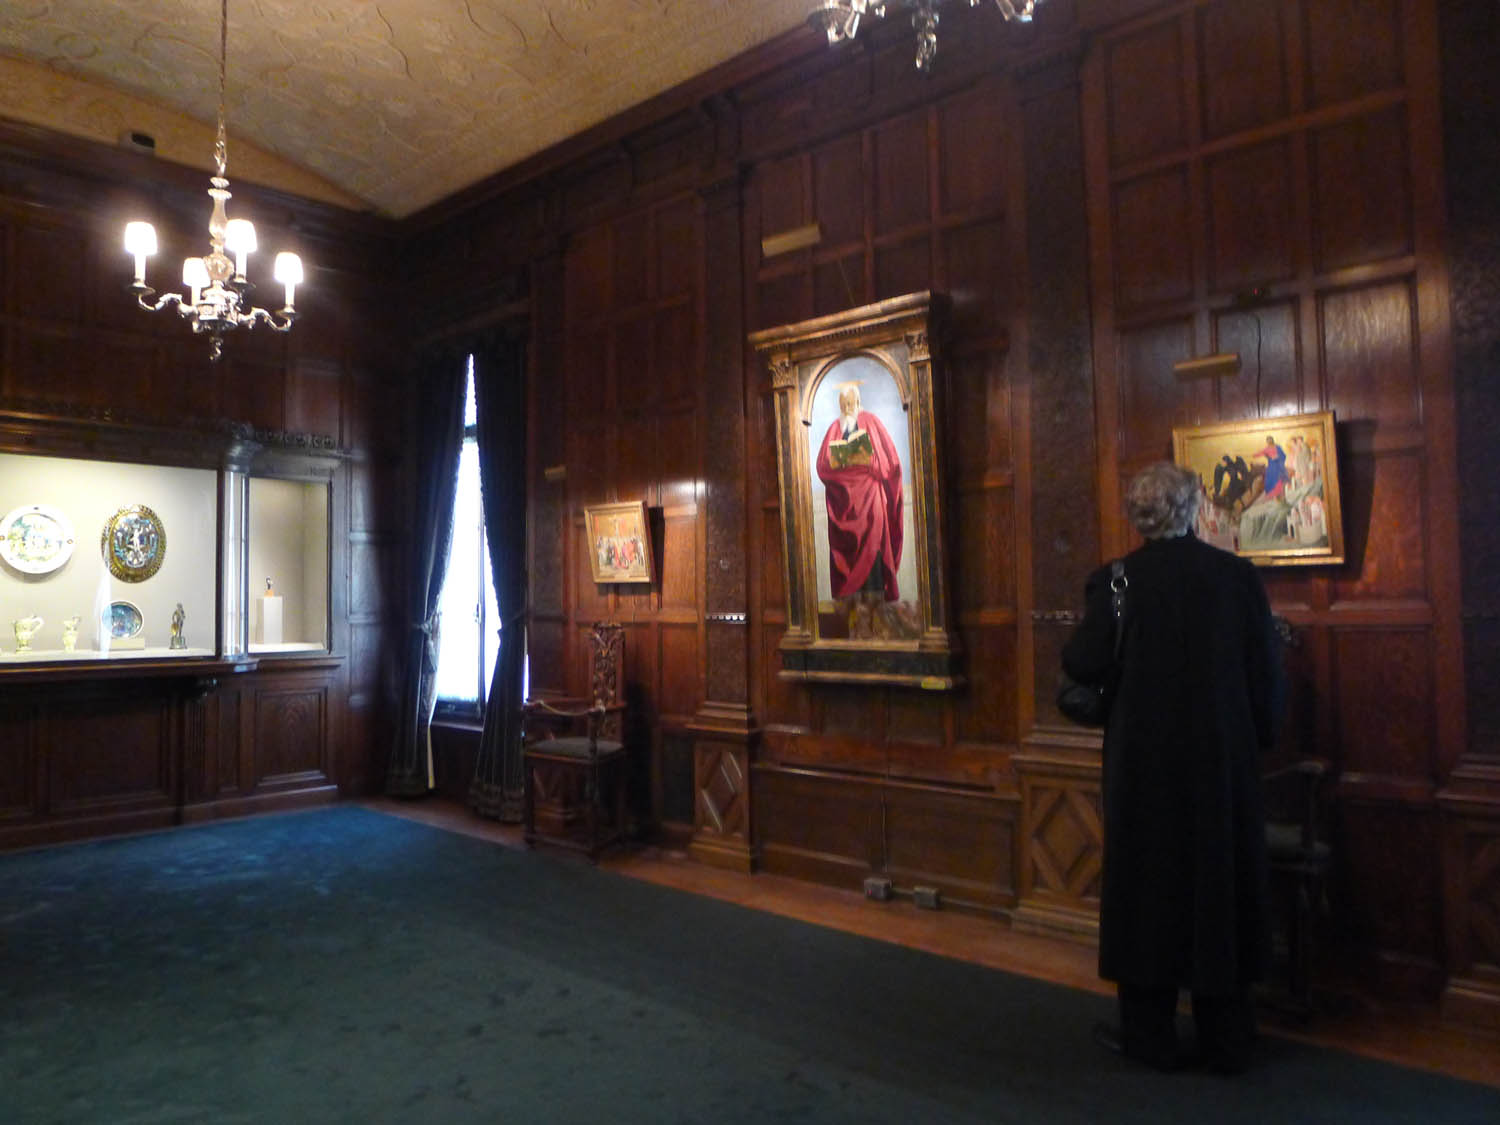 Another mini gallery room, with works acquired from J.P. Morgan